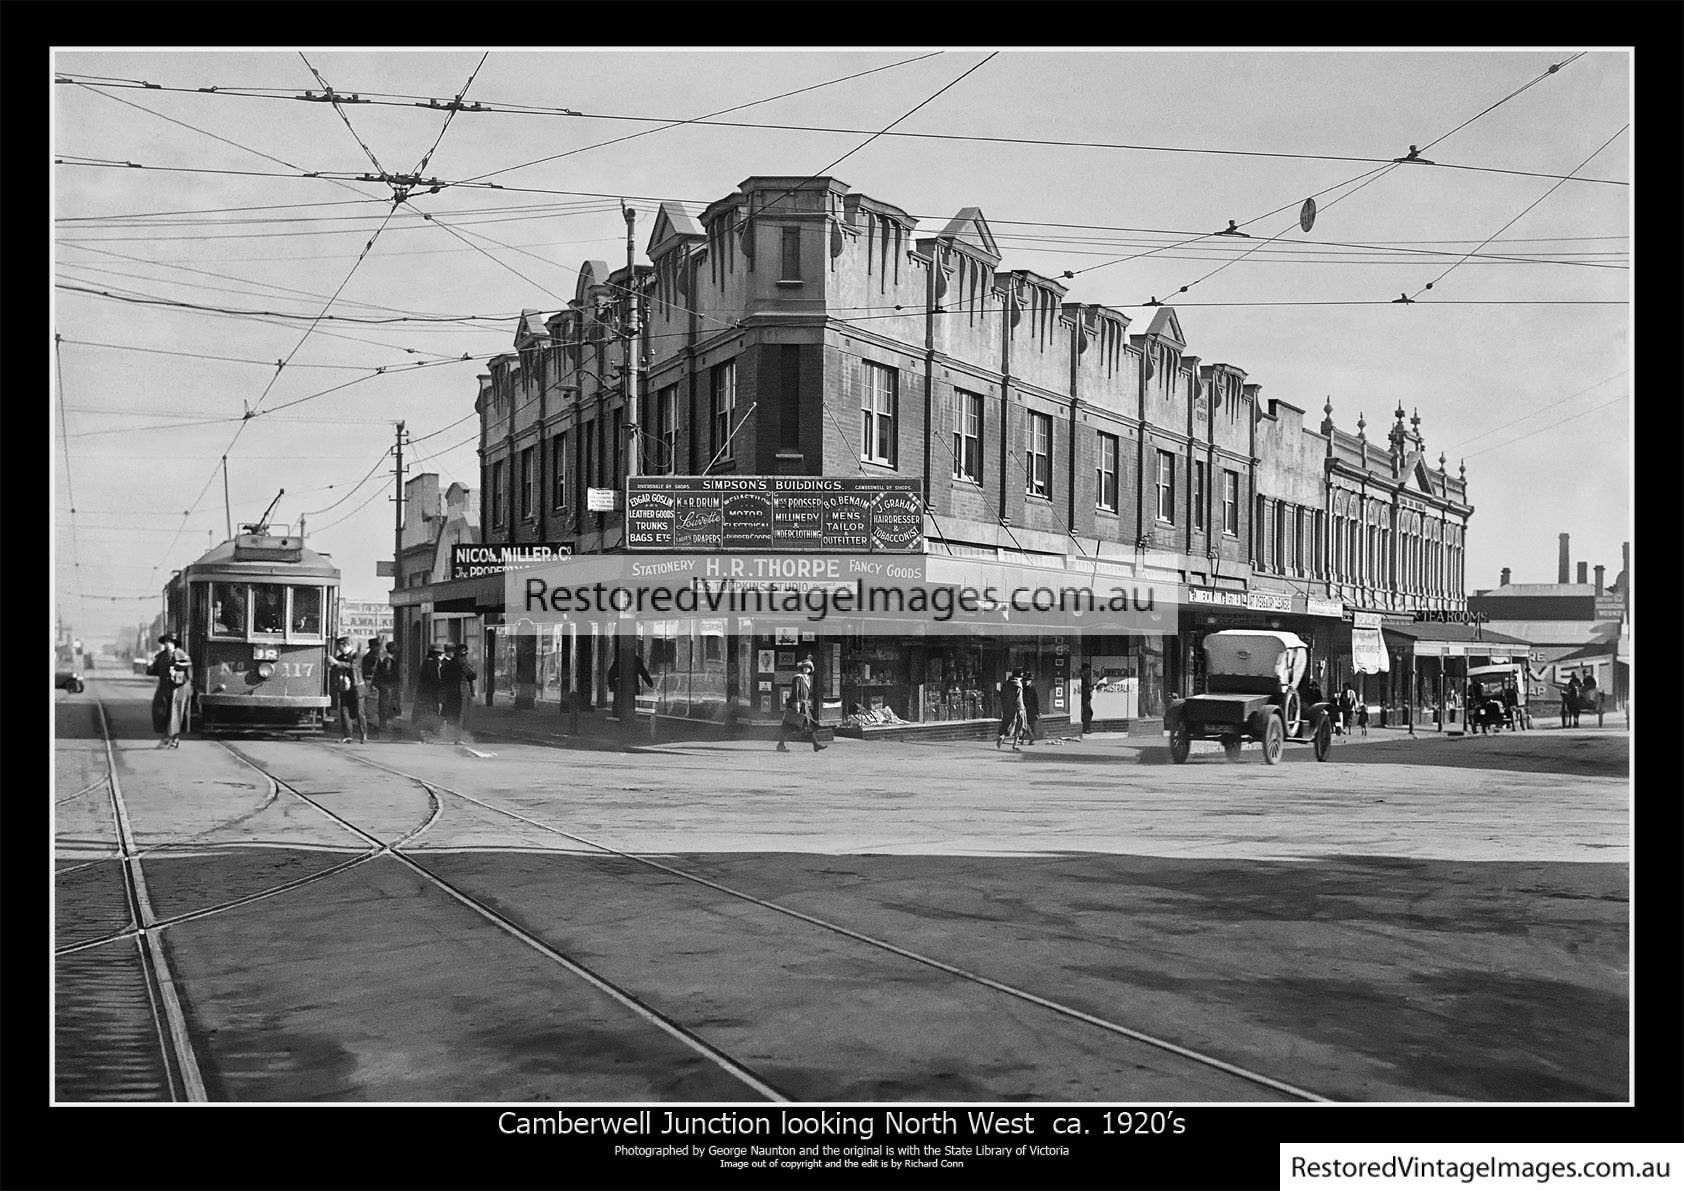 Camberwell Junction 1920s